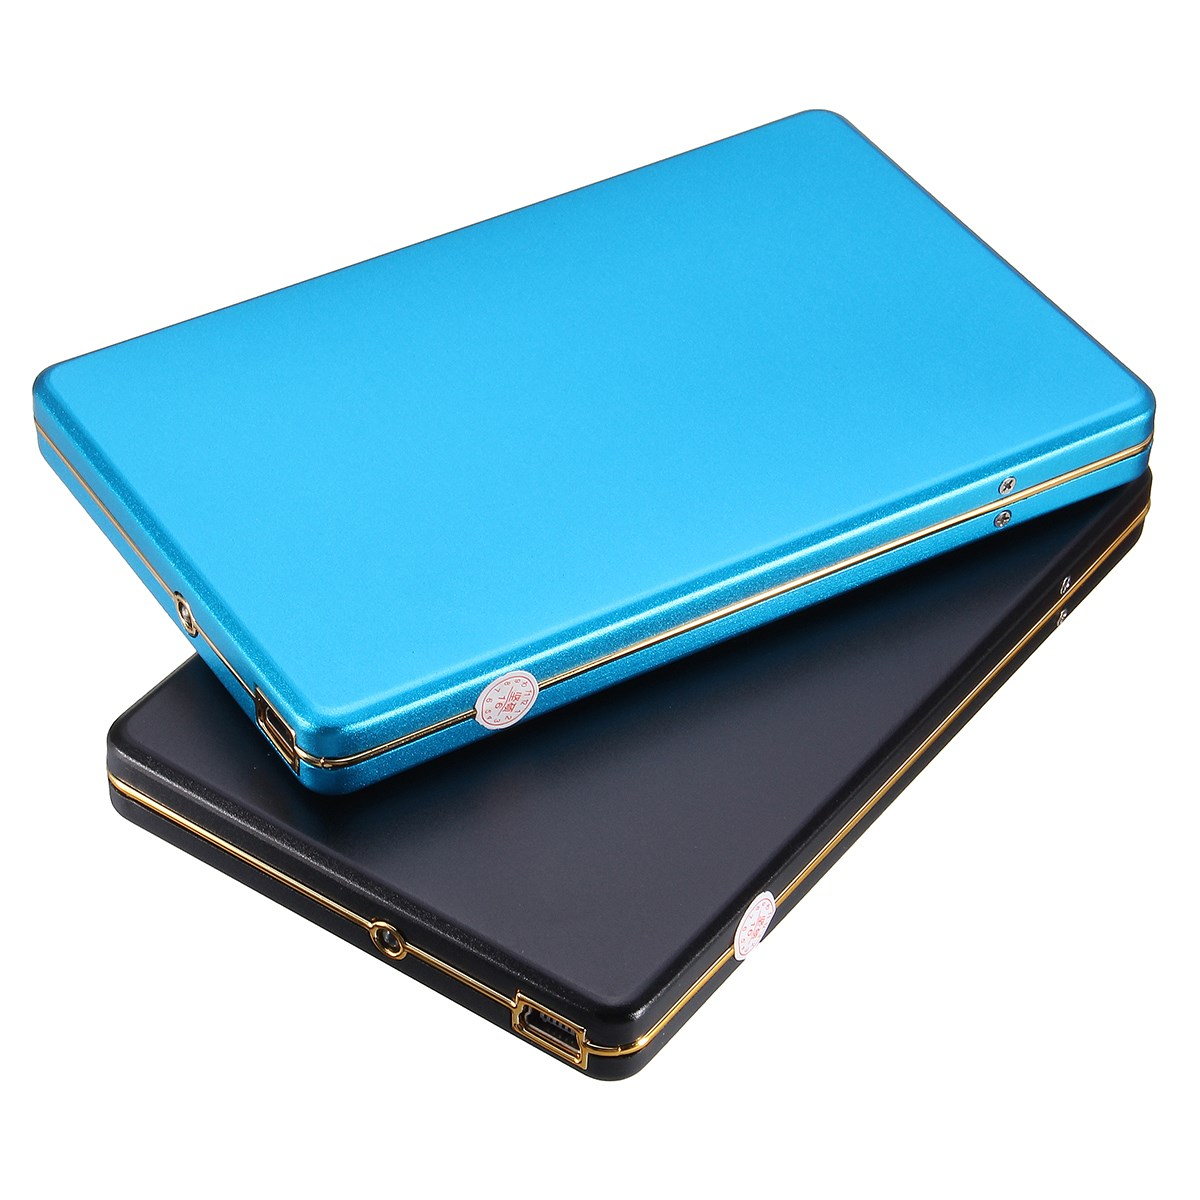 Newest External Hard Drive 500gb High Speed 2.5 Hard Disk for Desktop And Laptop Portable Hd Externo 500G Disque Dur Externe 100% portable new external hard drives hdd 500gb usb3 0 for desktop and laptop disk storage hd